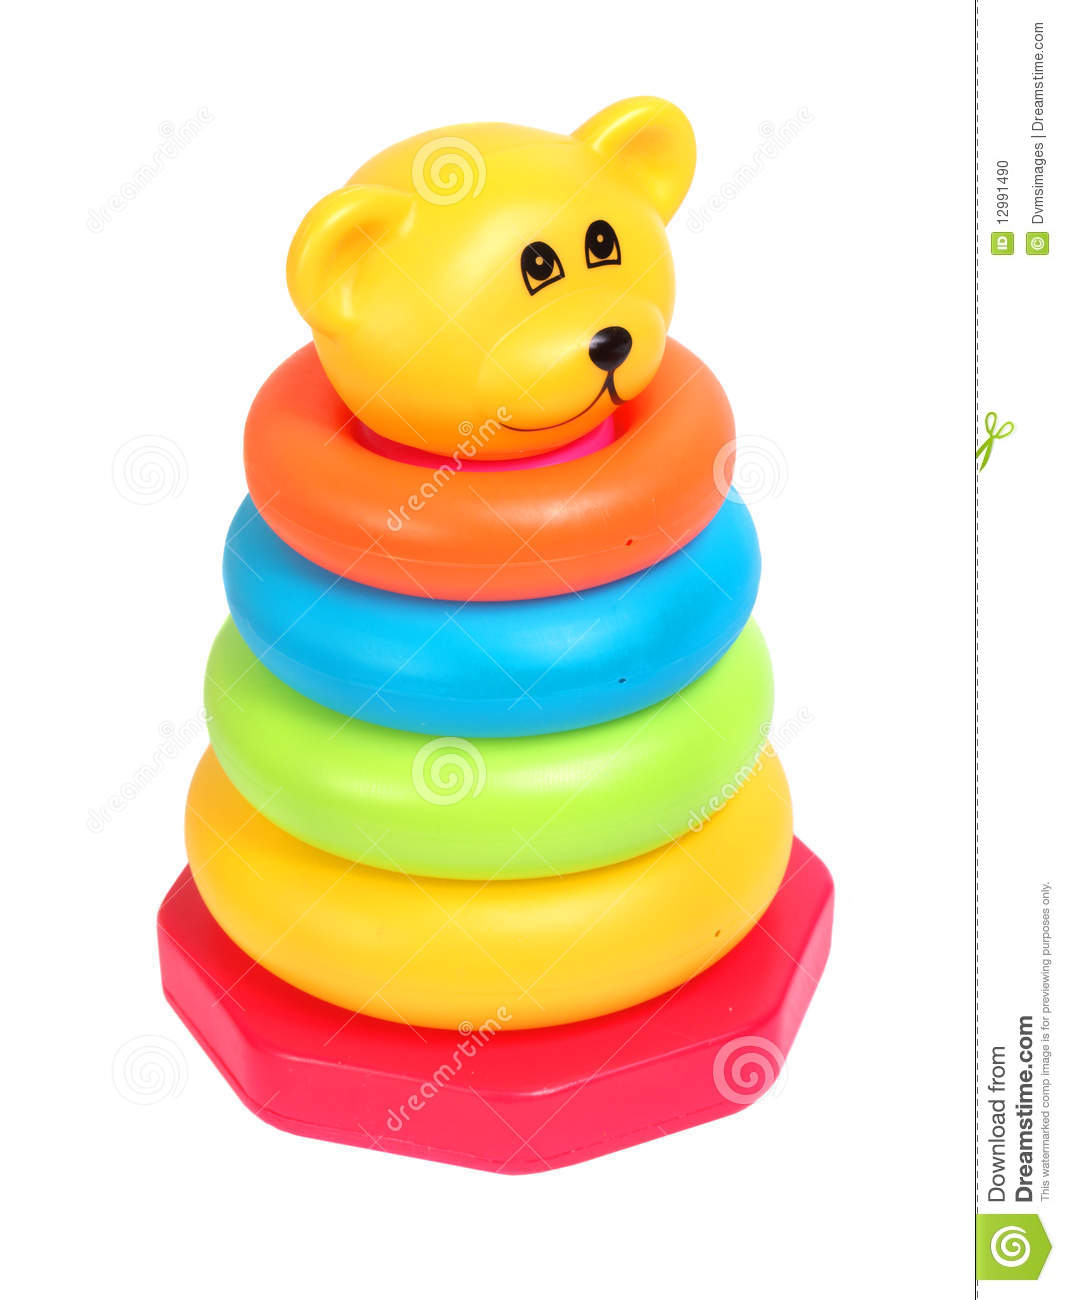 Toys For Infants >> Baby Toy Stock Photo - Image: 12991490